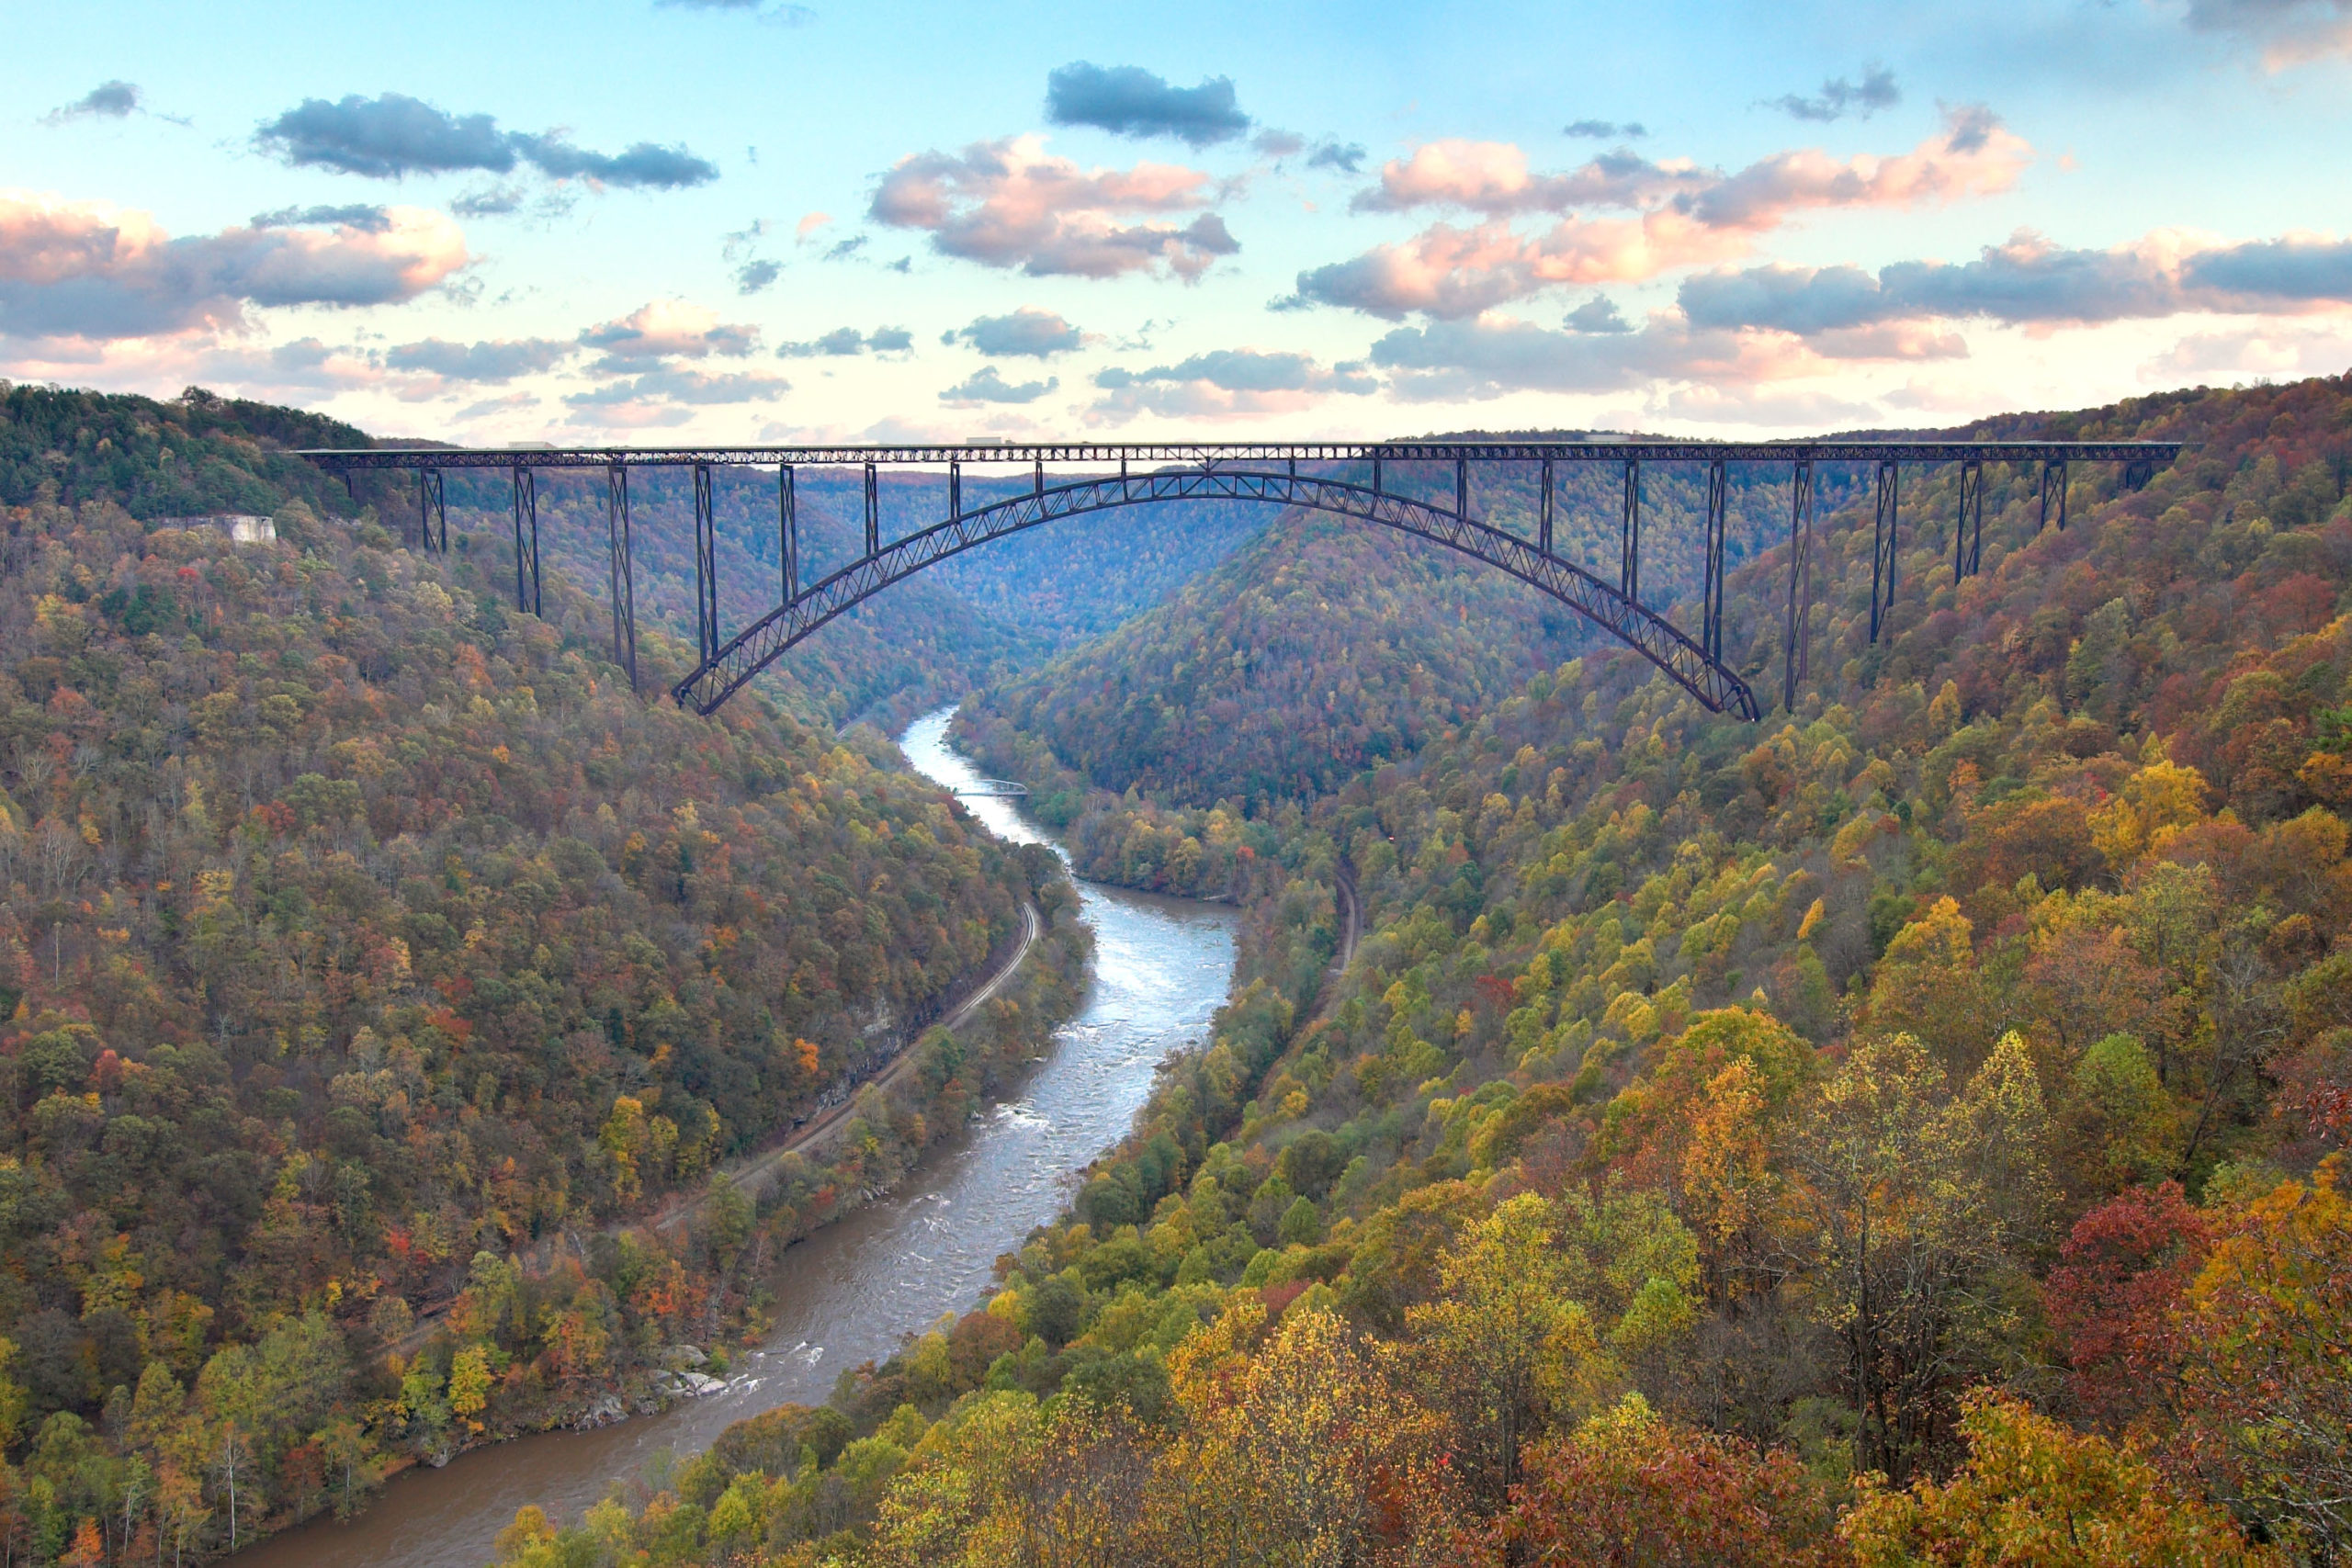 Announcing the 63rd National Park — New River Gorge